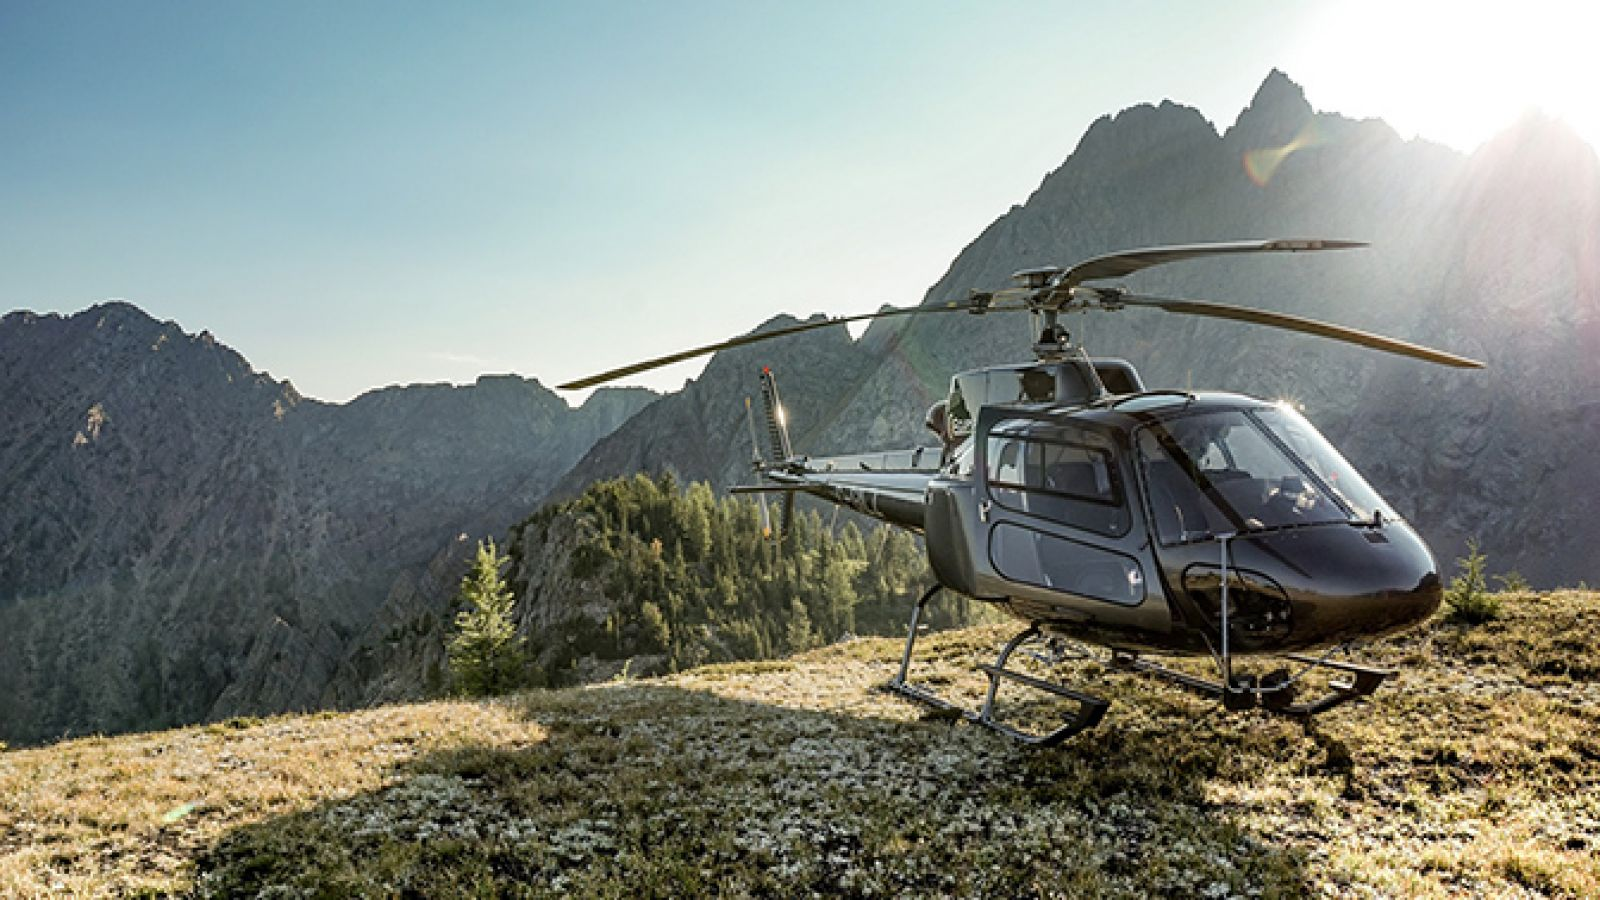 Eclipse Helicopters